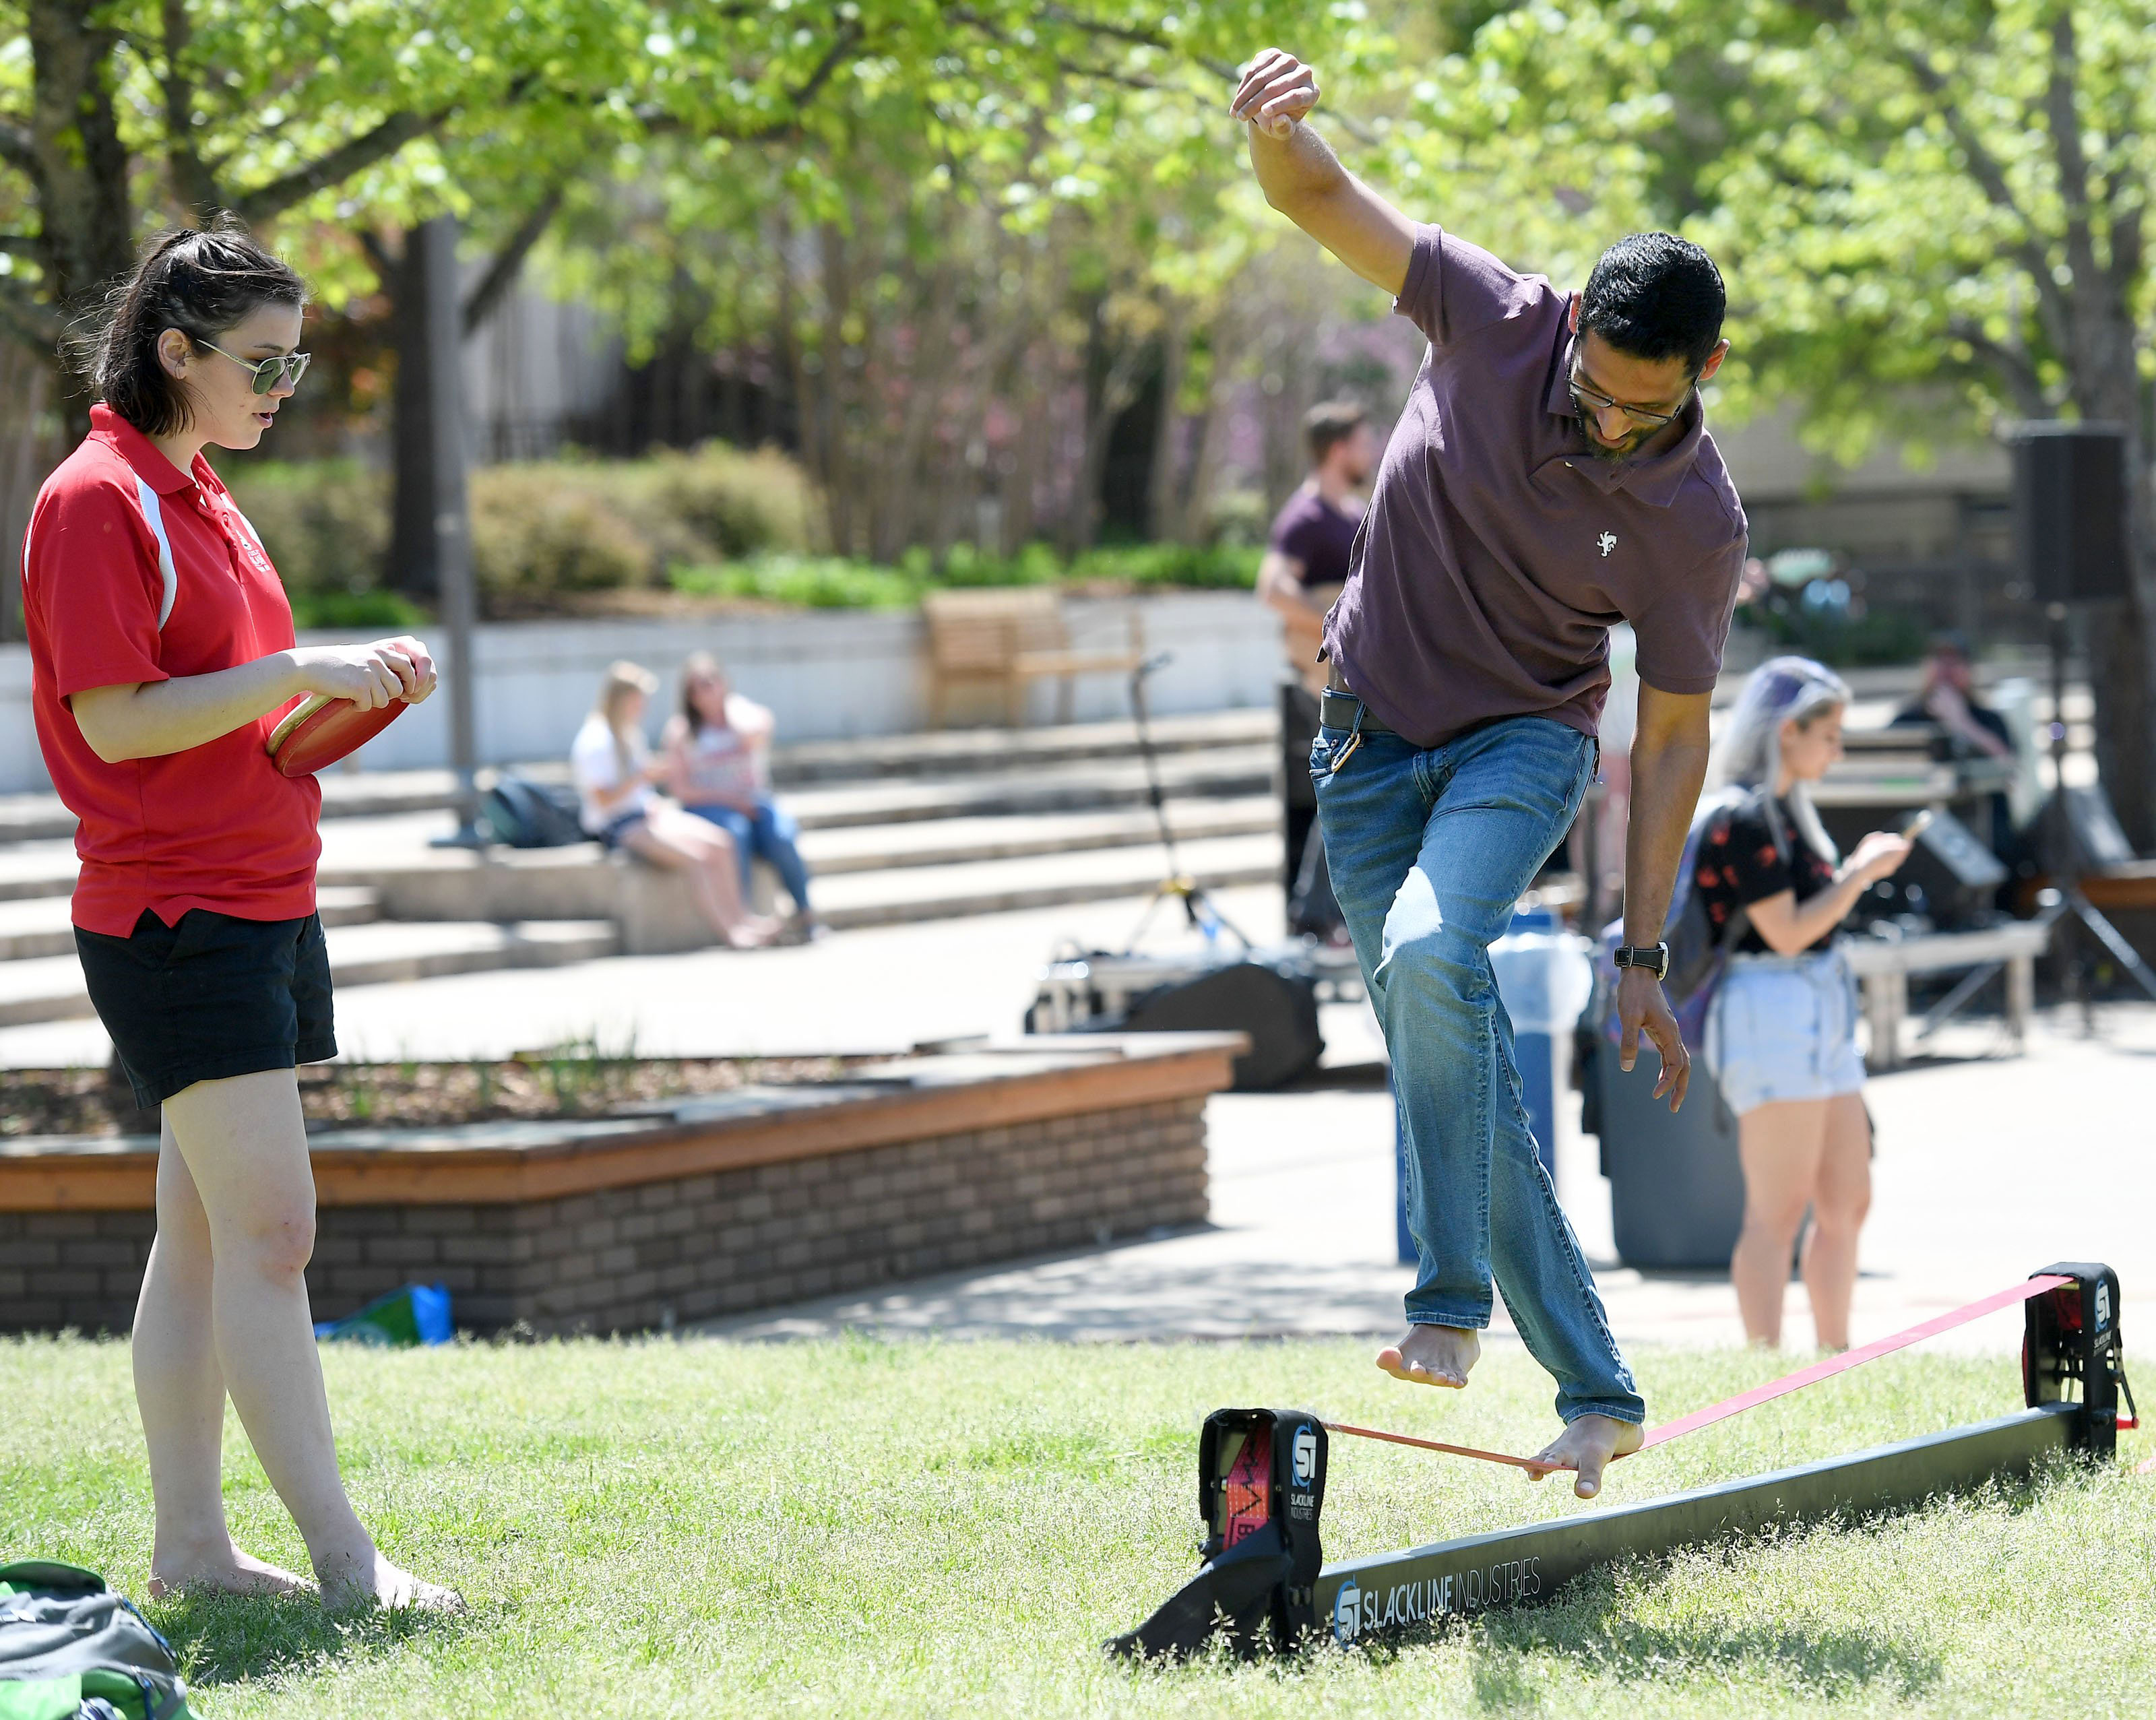 PHOTOS: Slacklining for Earth Day